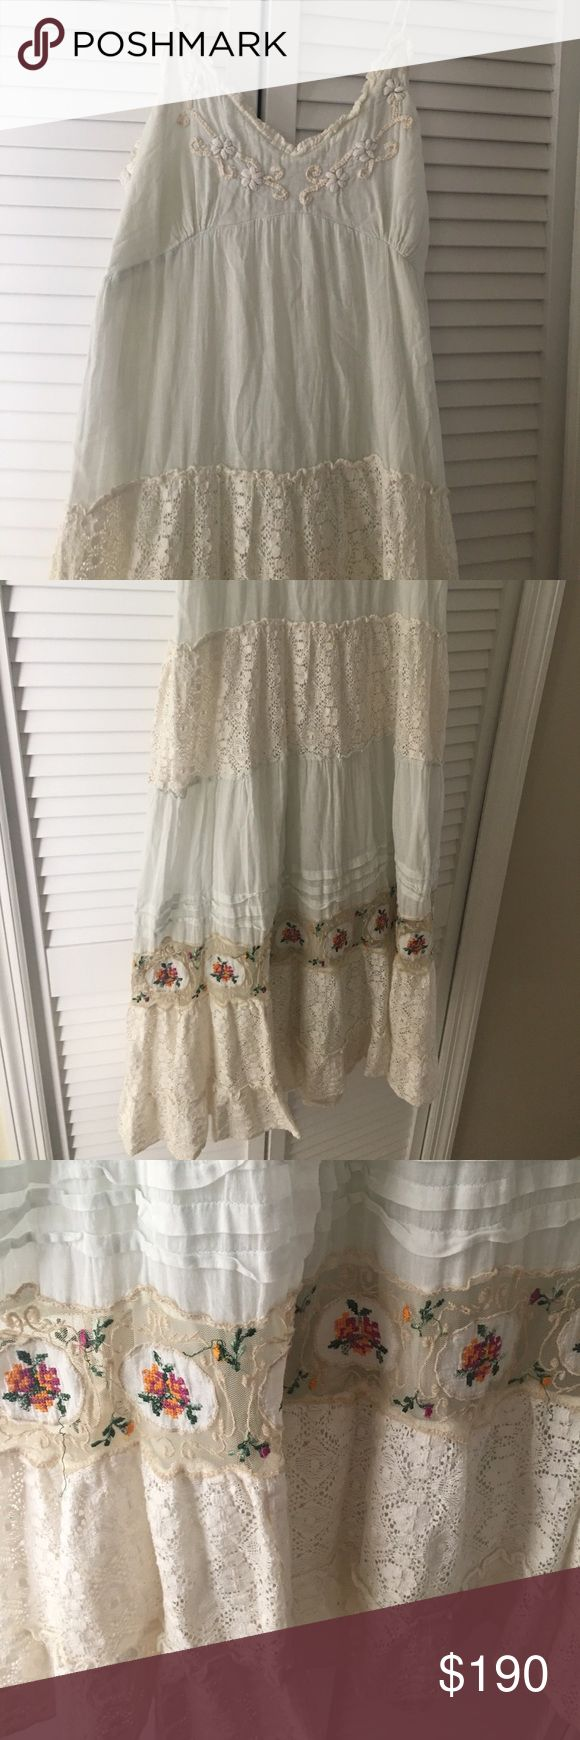 Amazing full length embroidered dress 👗 S-M-L Lovely watercolor mint green almost white , with cream color embroidery along neckline and cream lace inserts and also beige lace with pink orange green floral embroidery accents on beige lace on skirt part , see pics, enchanting style fits sizes SML since it has a stretchy back panel for perfect fit, and adjustable straps, fabric is cotton voile , very delicate beautiful dress 👗perfect for vacations beach special events , looks great with…